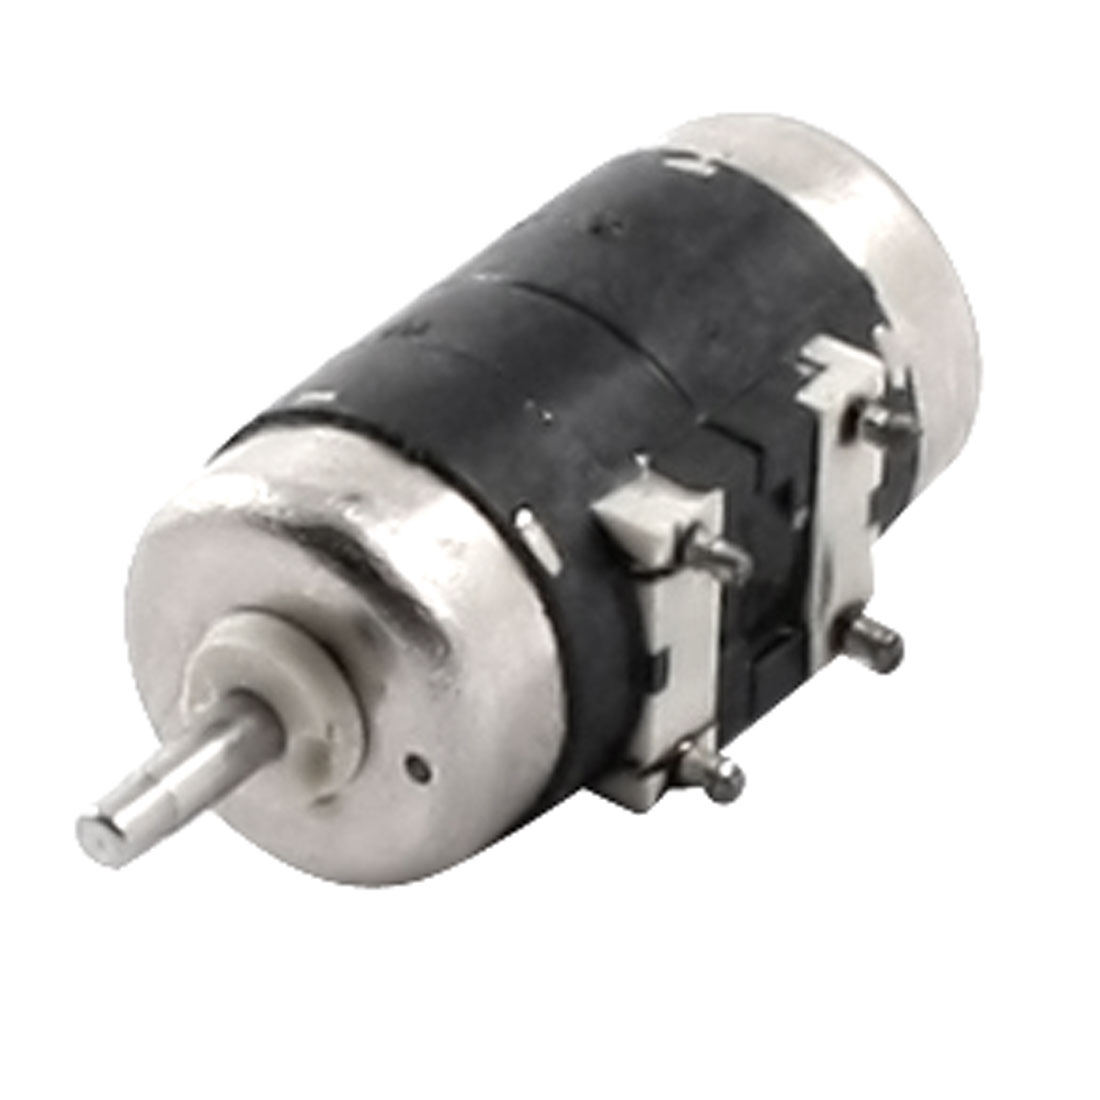 DC 2.8V 0.5A 2-phase 4-wire Metal Round Shaped Stepper Stepping Step Motor 31000RPM